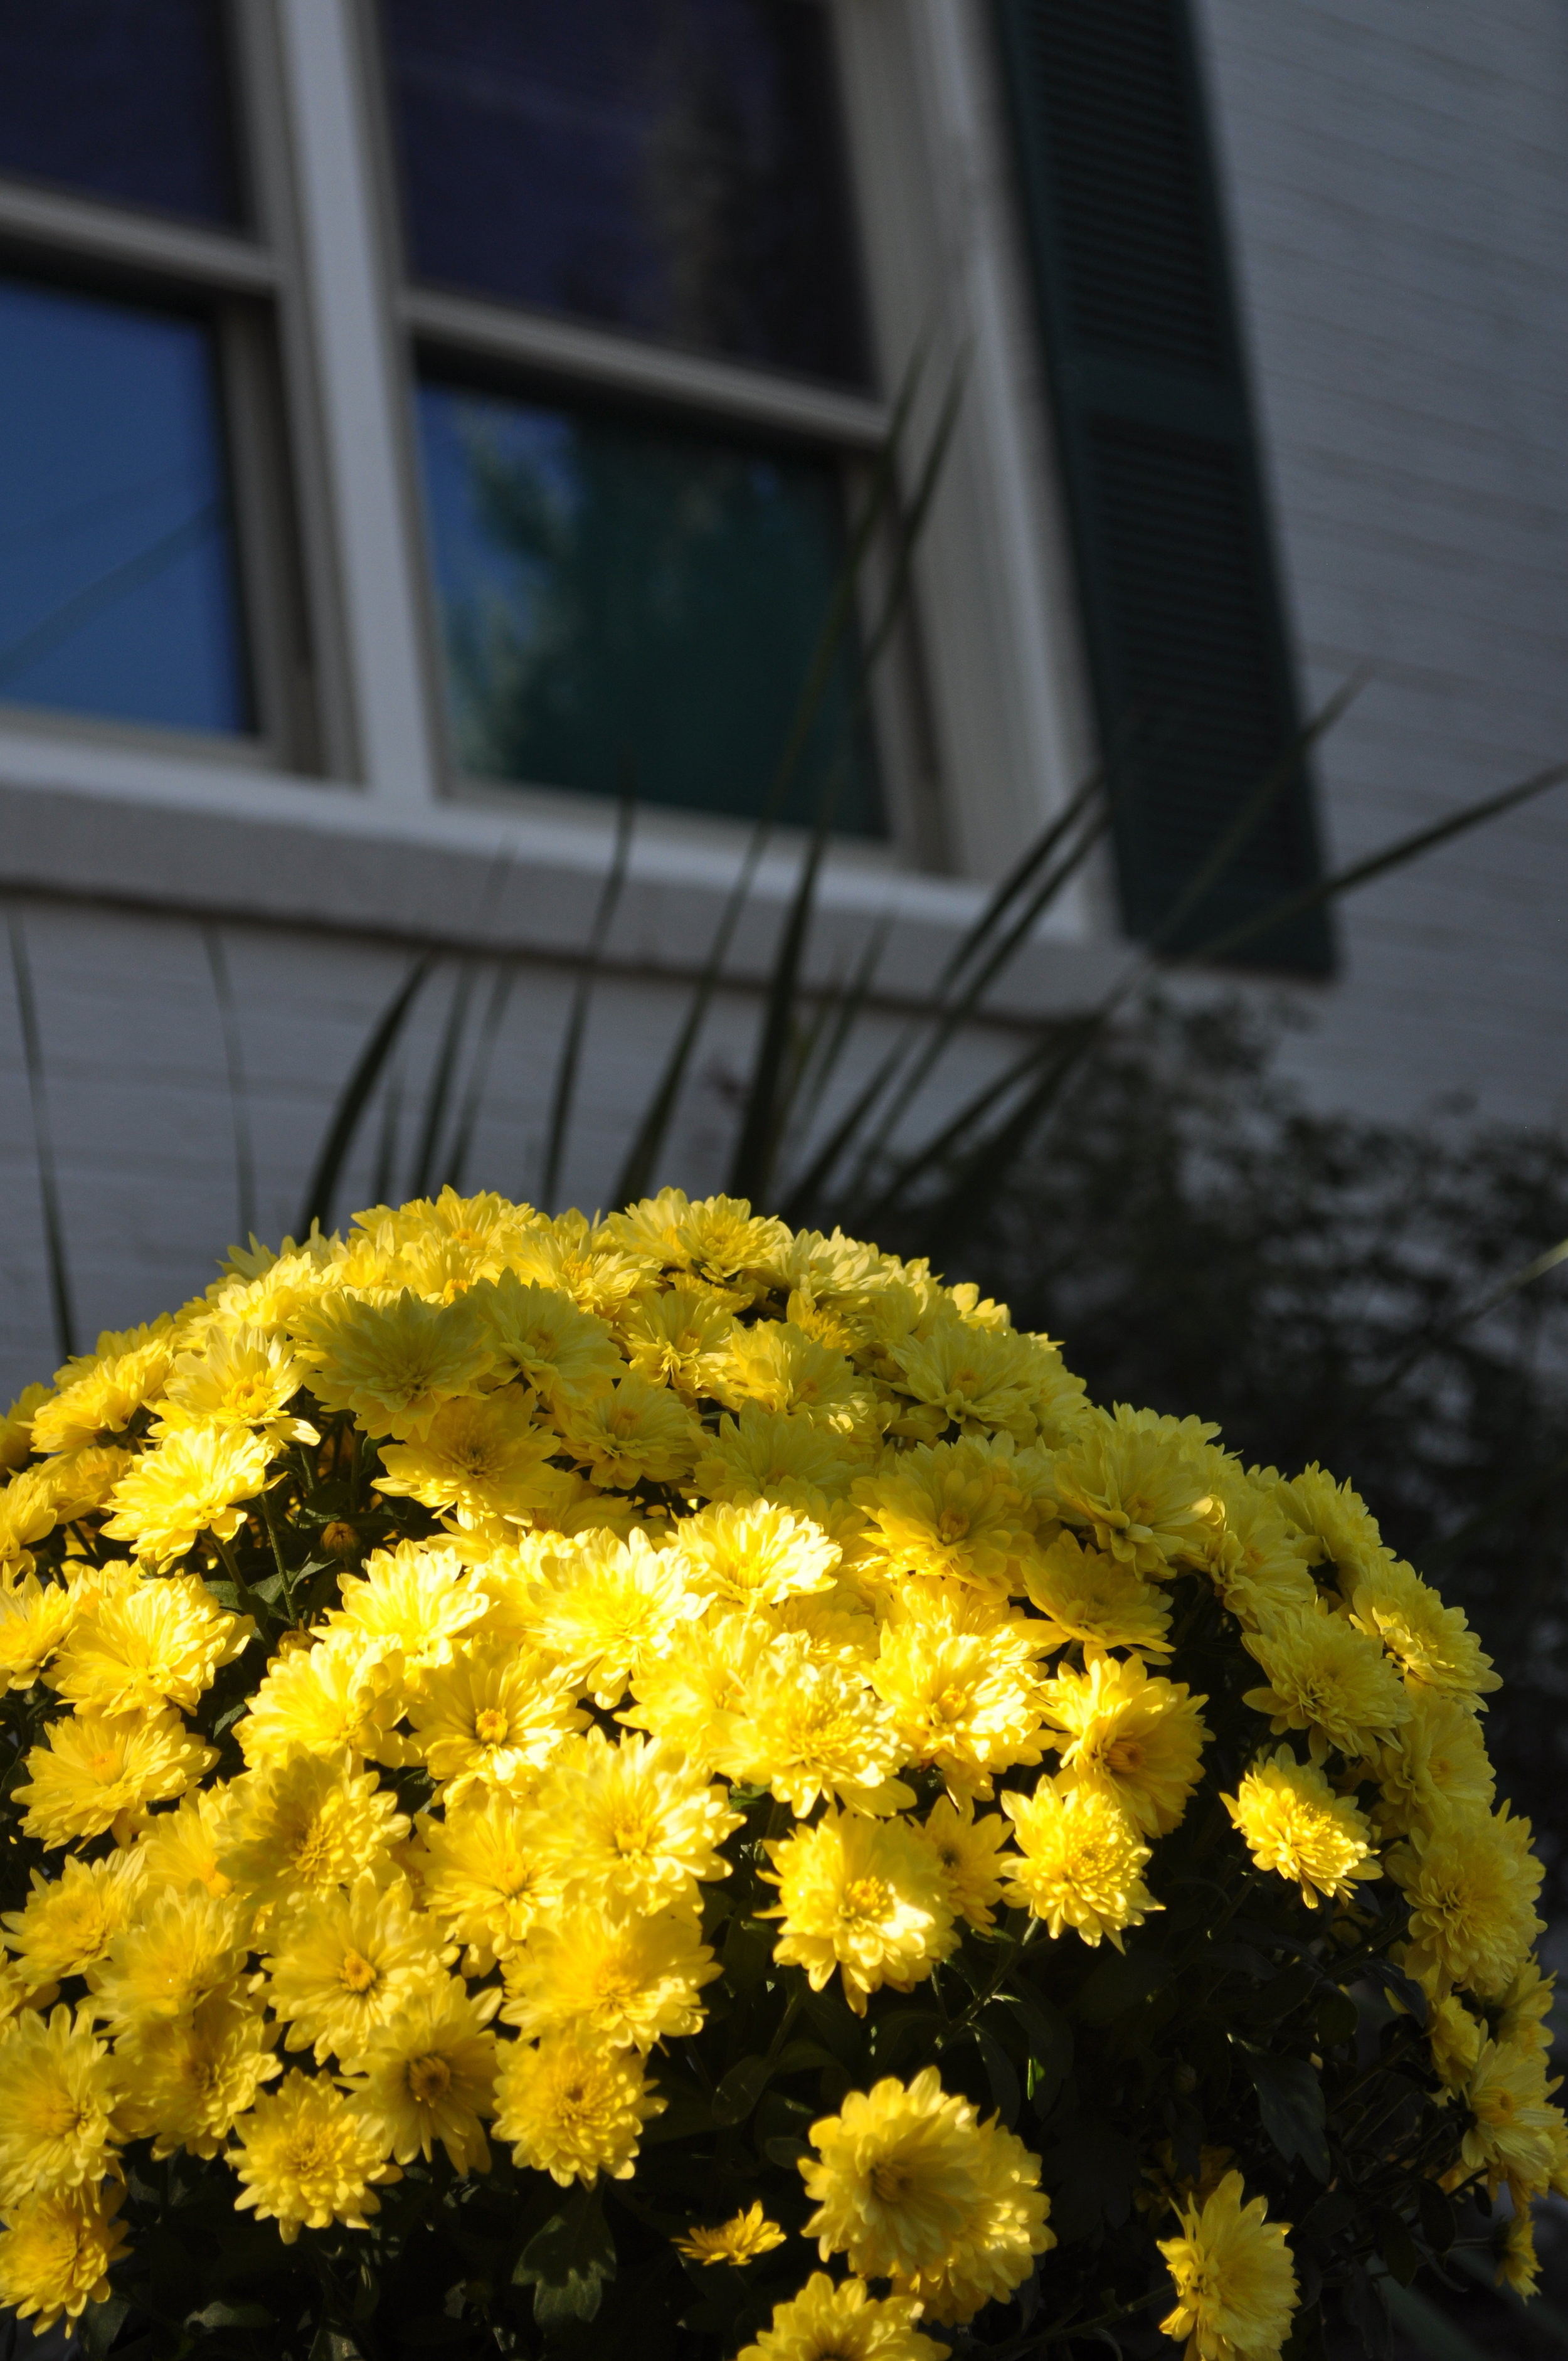 Yellow mum flowers as the main focus with a window on a white building with green shutters in the background.